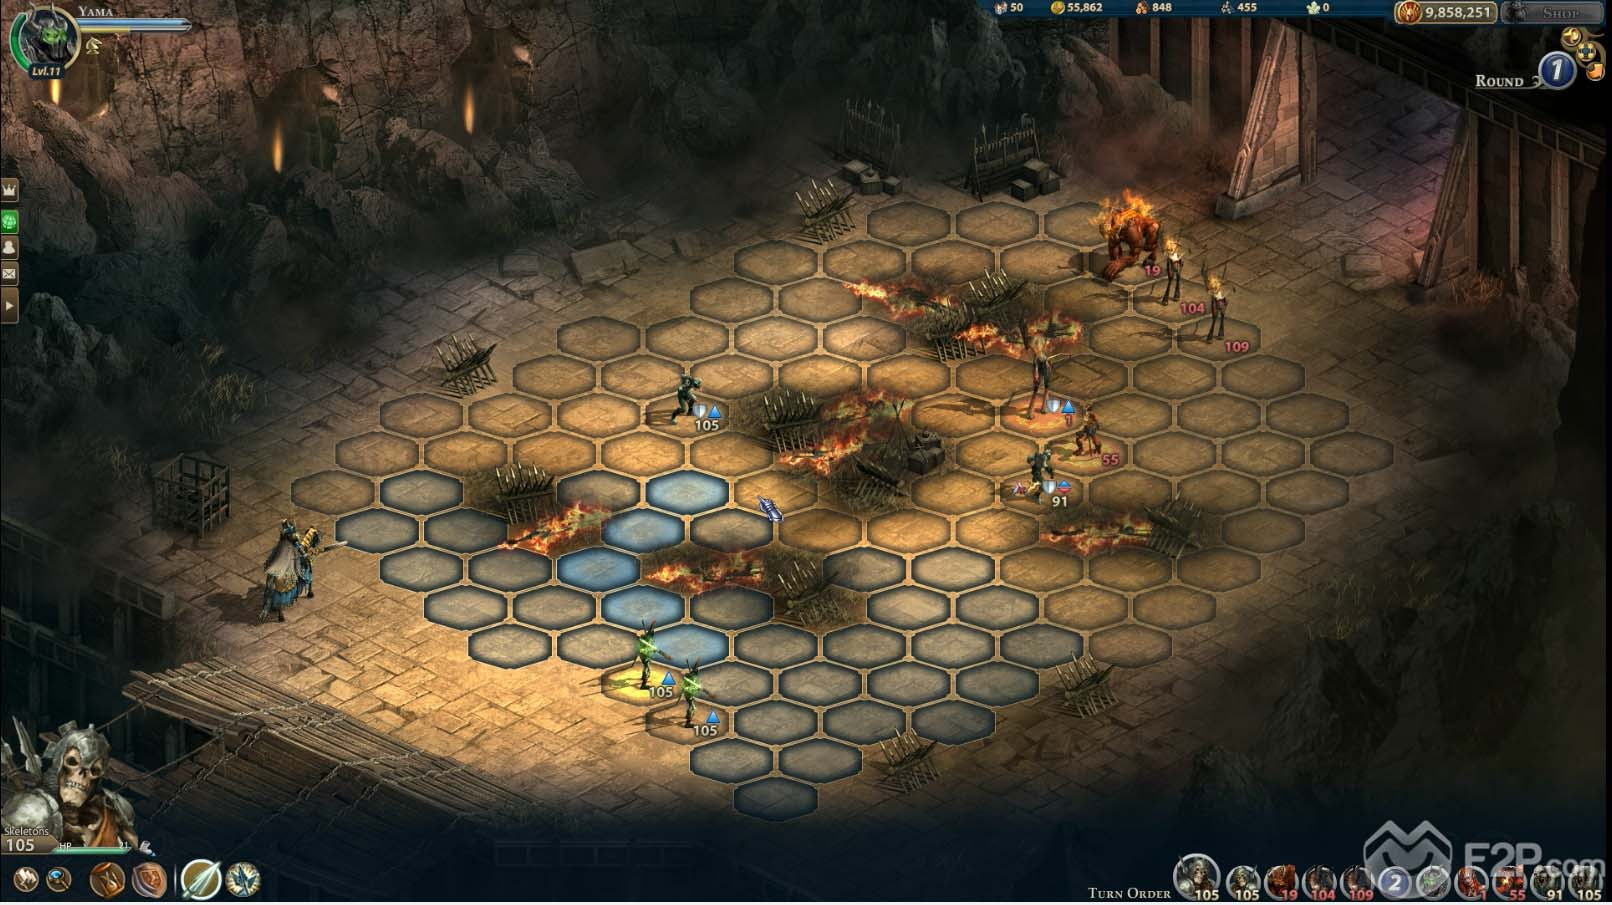 Heroes Of Might And Magic Online Backgrounds, Compatible - PC, Mobile, Gadgets| 1612x905 px